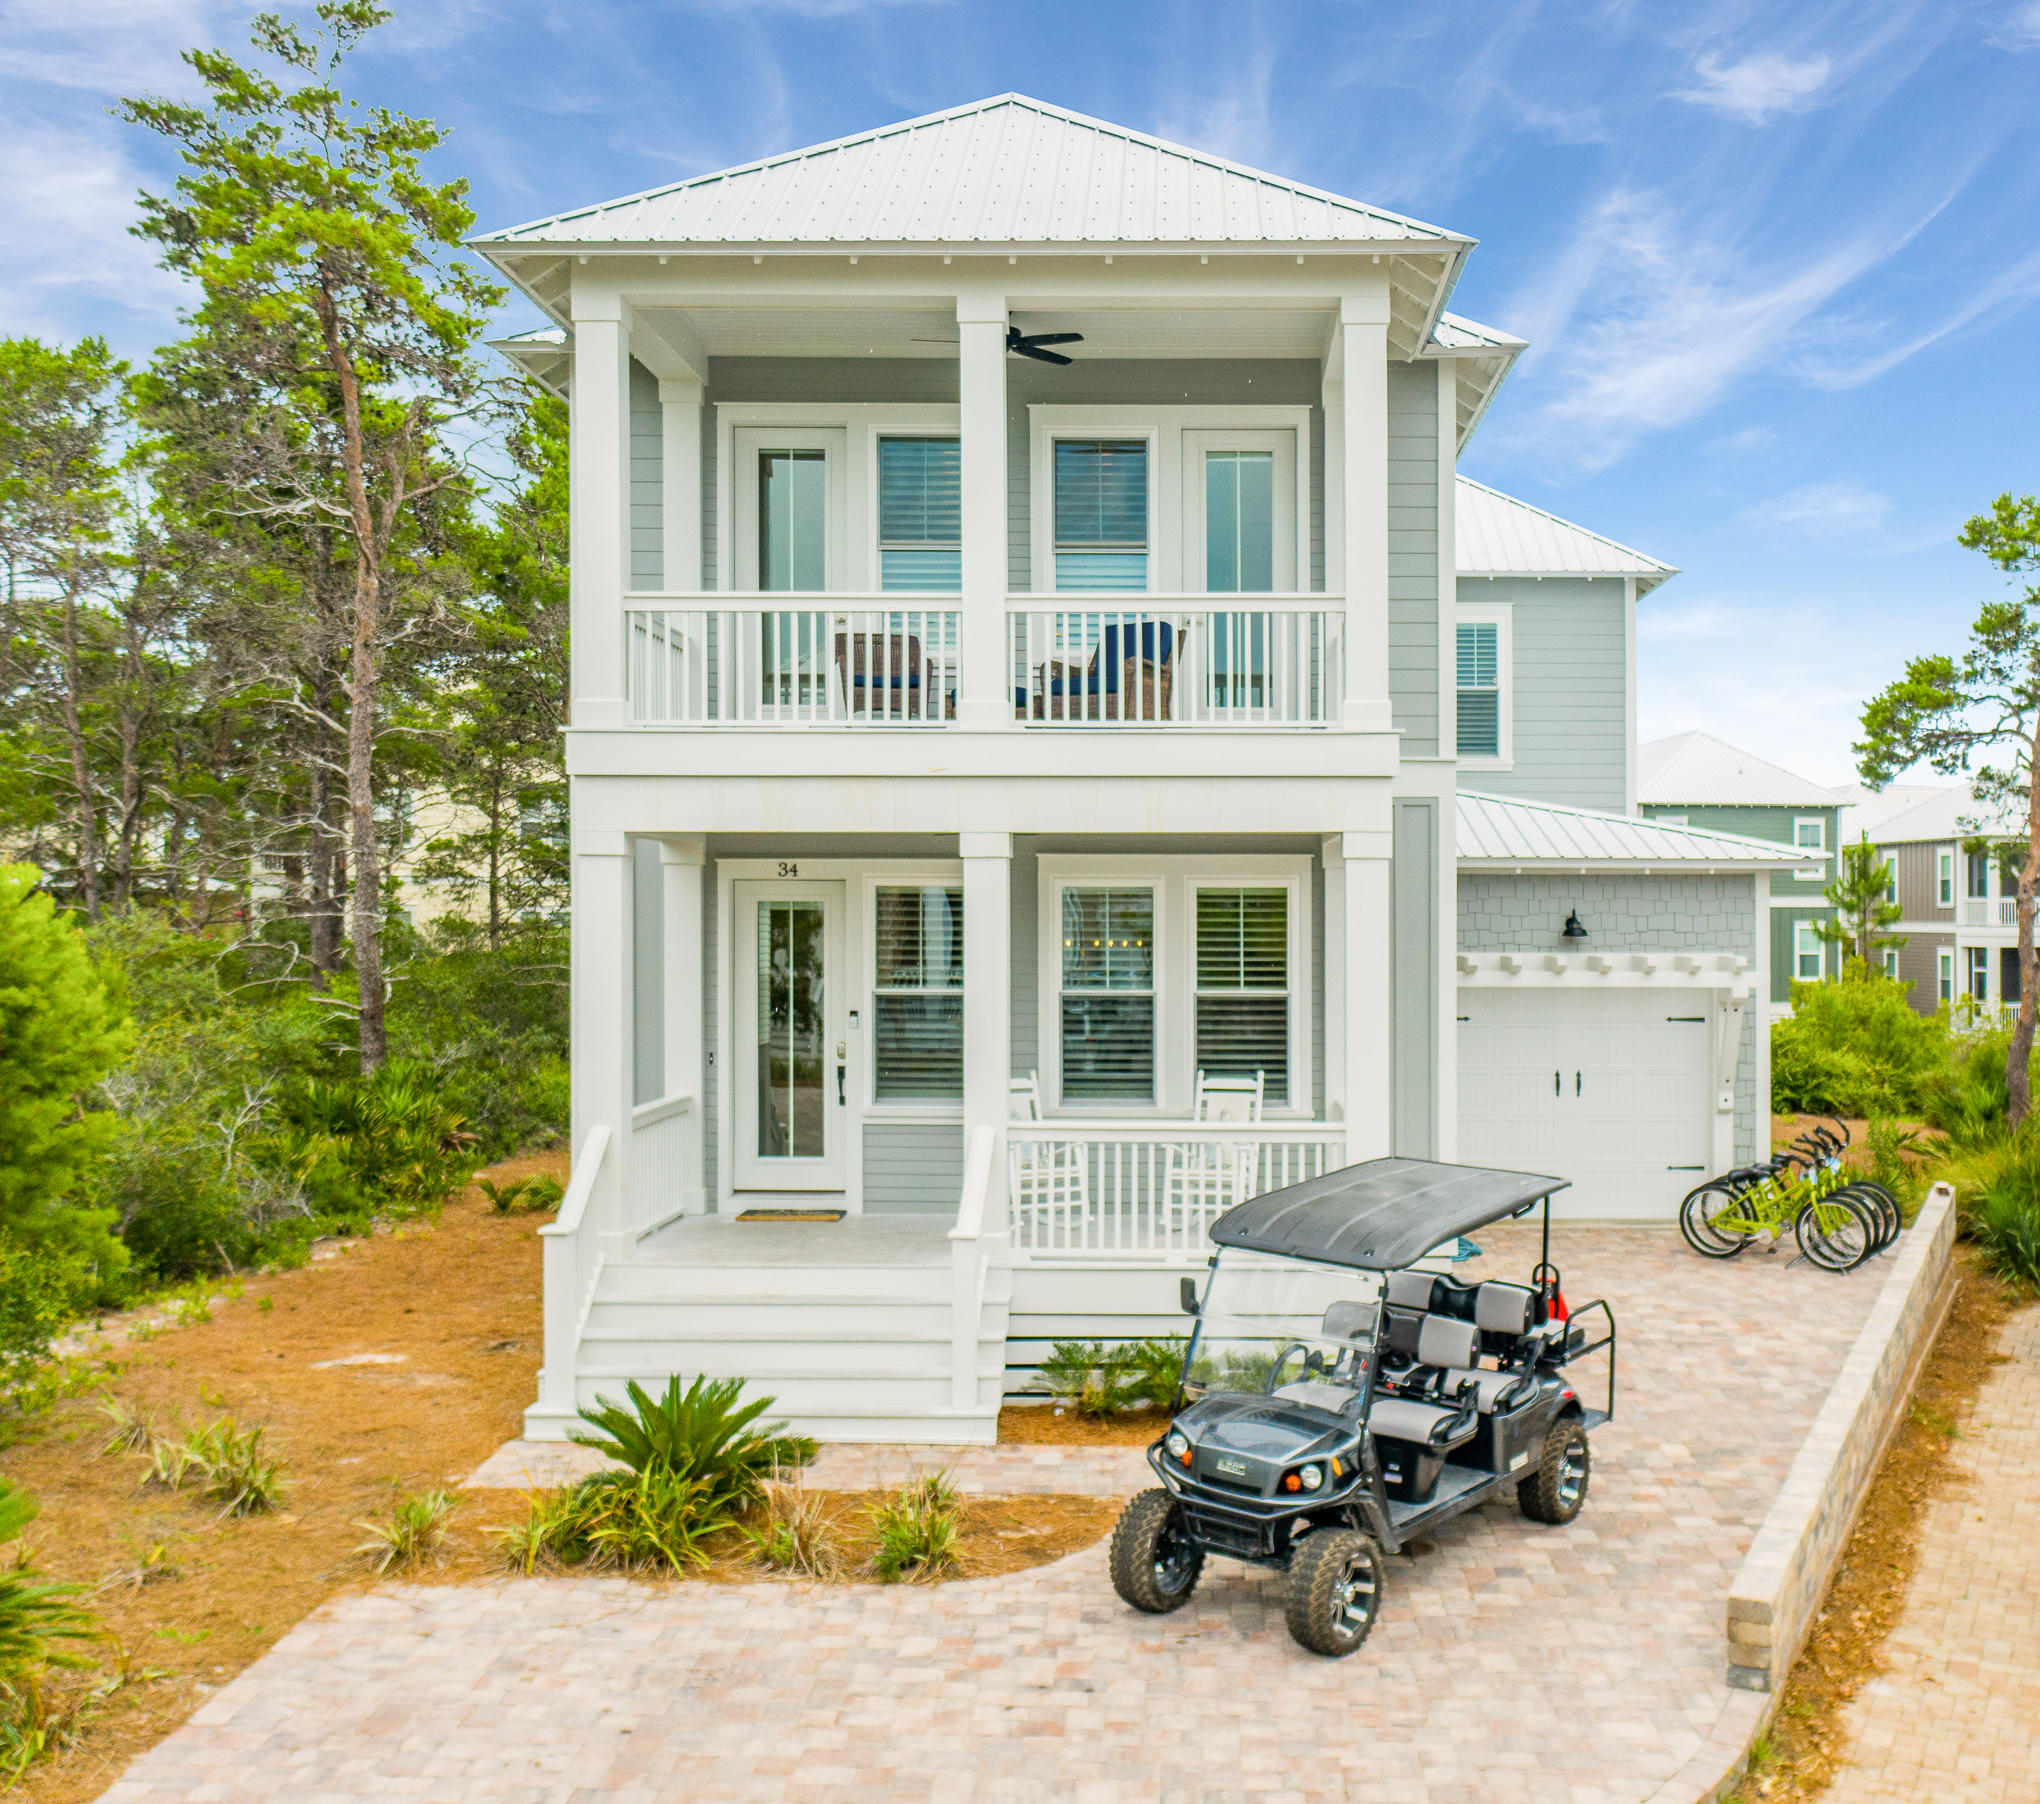 ''Two Rocking Chairs on A Porch'' is in Highlands Parks on a premium lot with 40' pond frontage; currently on Go Southern's rental. Built by Custom Coastal Home Building and positioned for a rental investment.Spaciously designed with four bedrooms and  four and a half baths; modern open interior behind a traditional two-story facade. Three porches provide quiet areas for kicking back and enjoying the breeze whispering through the surrounding trees. Featuring high-end finishes including: shiplap, raised ceilings with crown moldings, polished hardwood floors, custom barn doors adorn the closets in the two masters, one of which is located on the first floor. Veined marble and a deep stand alone soaker tubs are just some of the noteworthy bathroom feature Designed and furnished by Laura Mckee with Dwell Interior Design. Double pane windows flood each room with natural light while the high-tech air to a heat pump makes this an eco-friendly home to run. A fully equipped open-plan kitchen, GE Cafe Appliances enhance the open kitchen with quartz counters and a sizable living and dining area are perfect for entertaining in style. Climb the half-turn staircase to reach the versatile hall recess on the second floor utilized as a media room. Conveniently located on Scenic Highway 30A, this home is surrounded by Point Washington State Forest for hiking and biking in unspoiled surroundings. If you prefer swimming and sunset strolls beside the beautiful Gulf of Mexico, there are two beach access points less than a mile away. Closer to home, take a dip in the pristine community pool with water features, hot tub and social entertainment area. Shopping, cafe's, and amenities nearby, complete your Florida lifestyle. All furnishings, artwork, and housewares convey. The six passenger golf cart is 2020 EZ GO and is negotiable. Current rental bookings with Go Southern to convey.